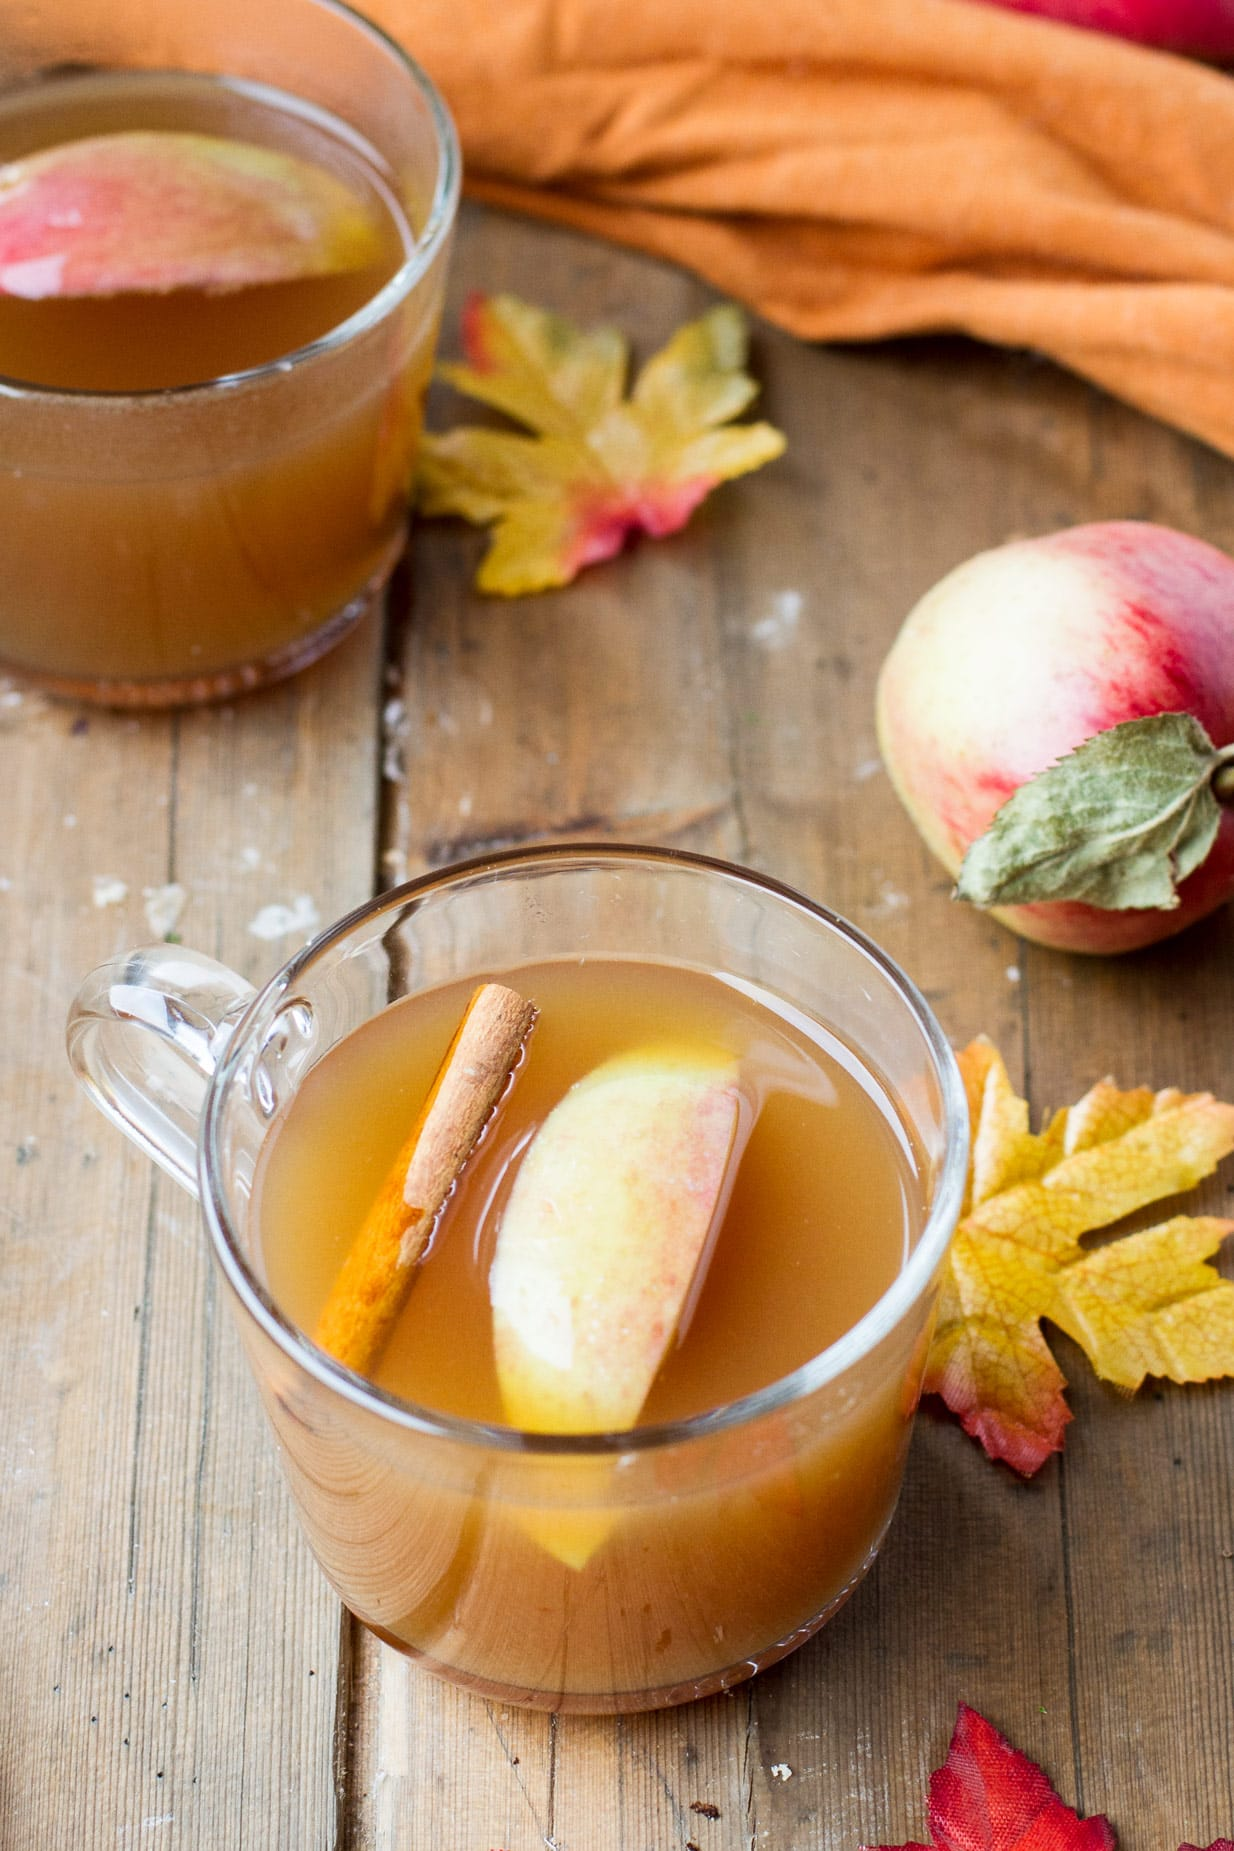 Hot Mulled Apple Cider (Eplegløgg)